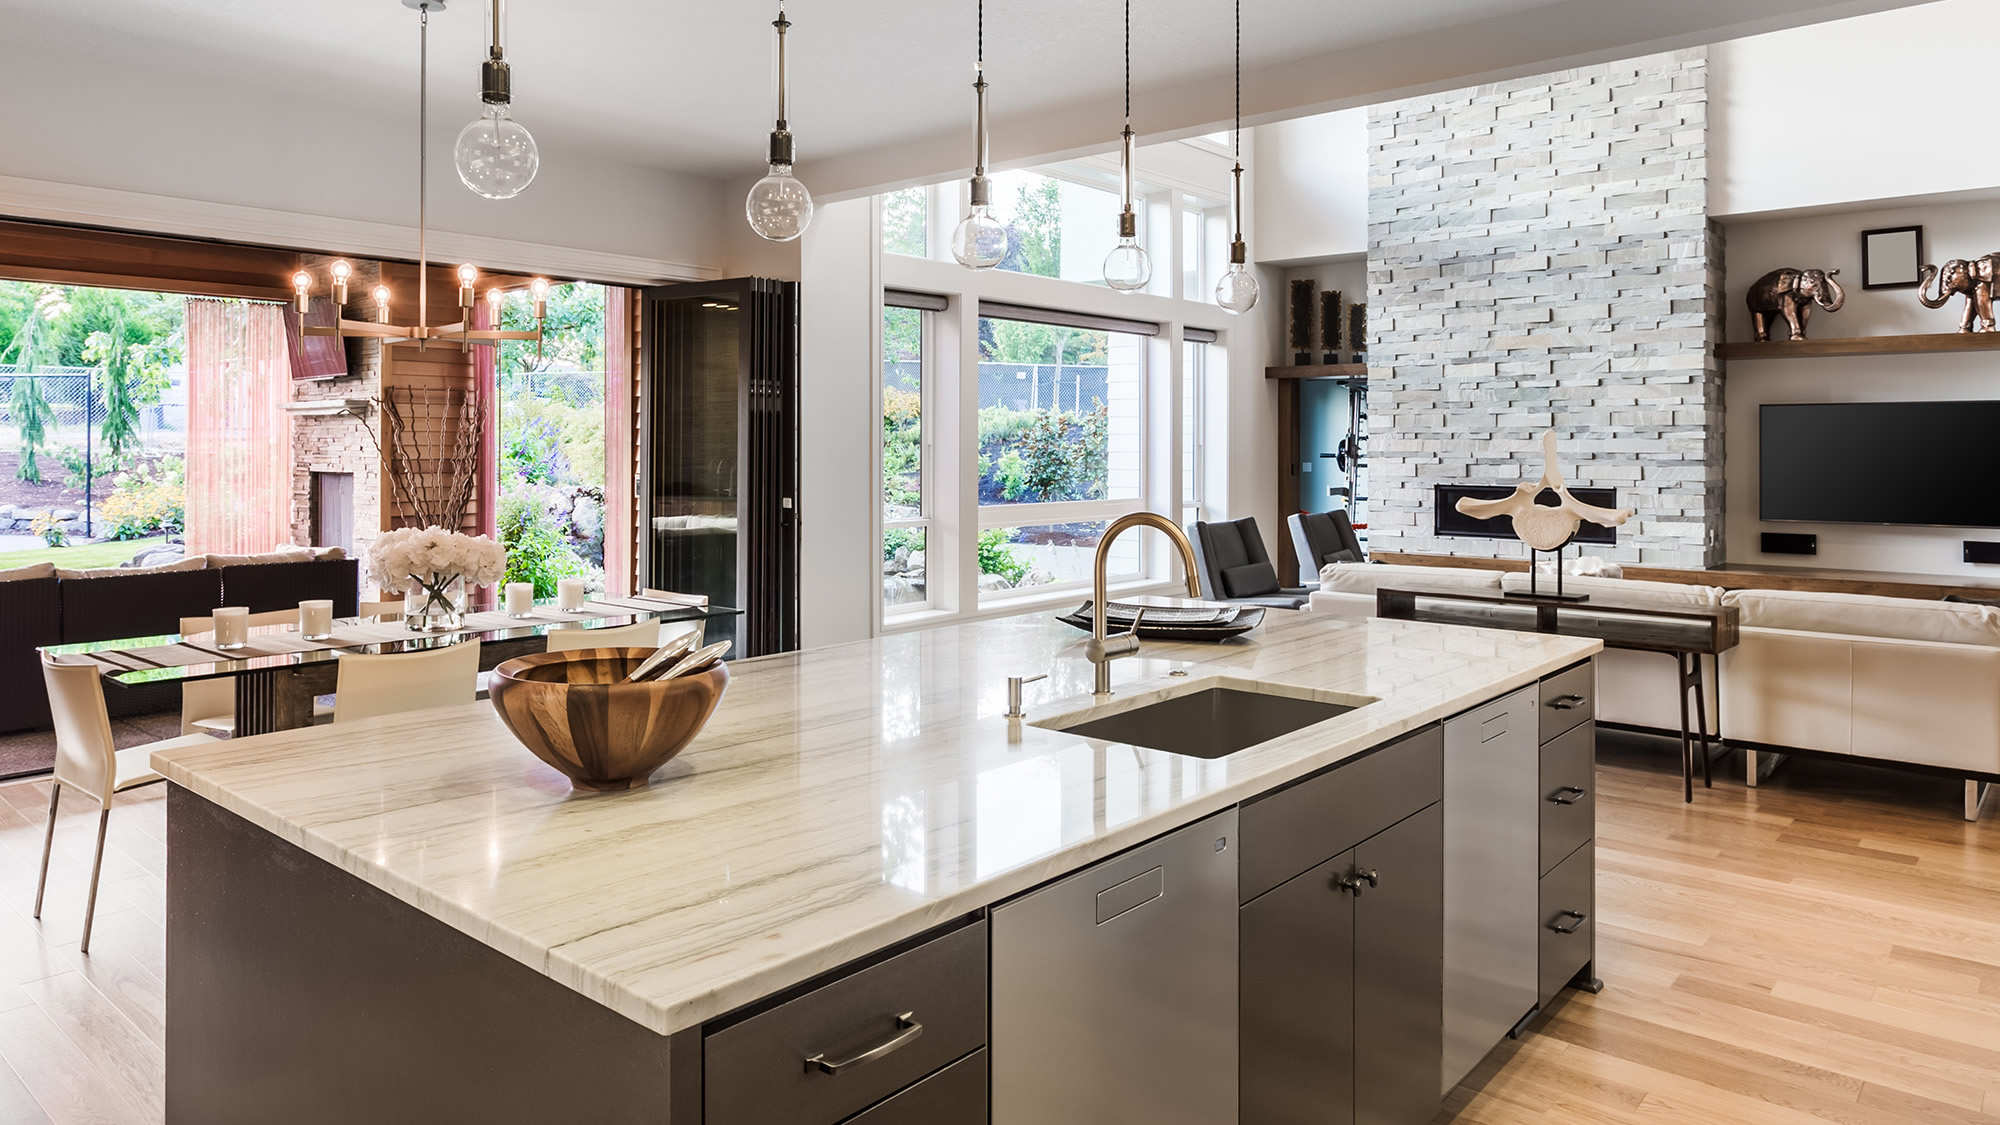 Kitchen remodel by HS3 in Foutnain Hills AZ